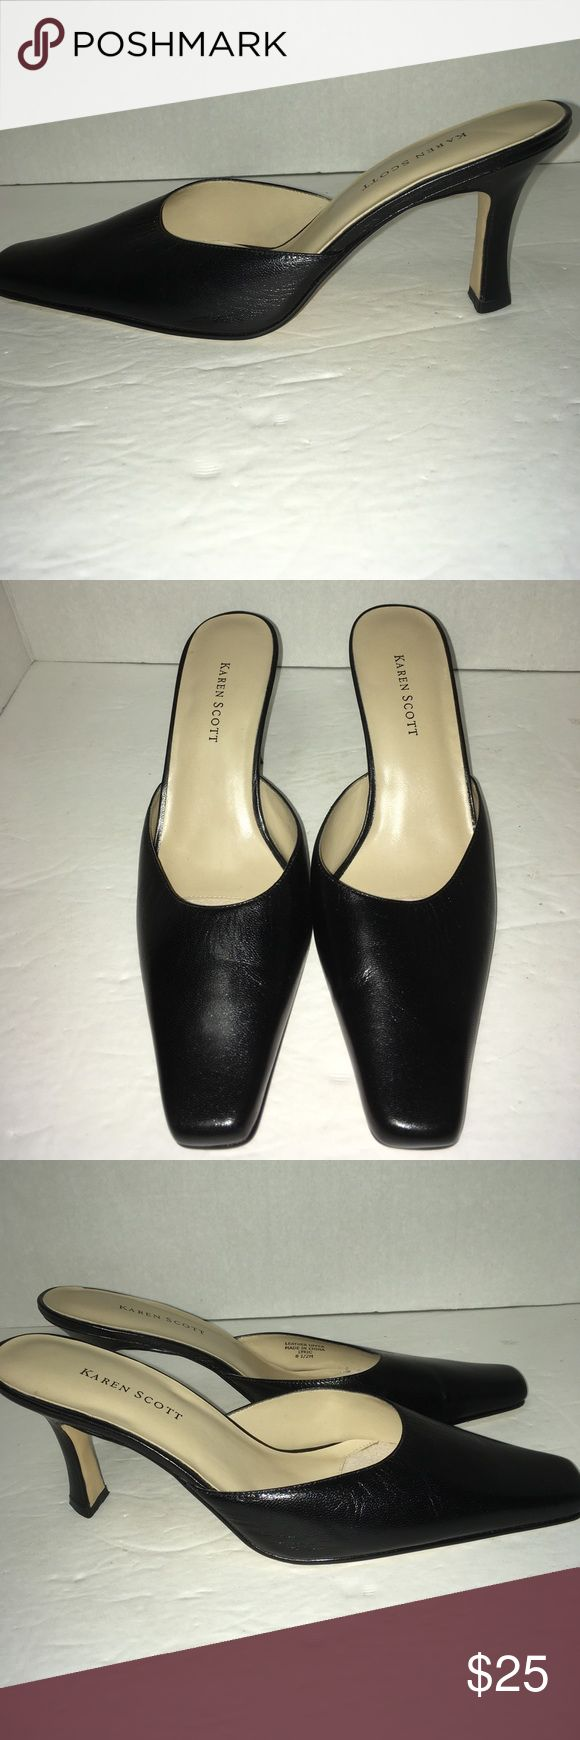 """NWOT Karen Scott black leather Mule 3.5"""" Heels New Without Tags!  """"Lyric"""" miles with triangular shaped heels. Karen Scott Shoes Mules & Clogs"""